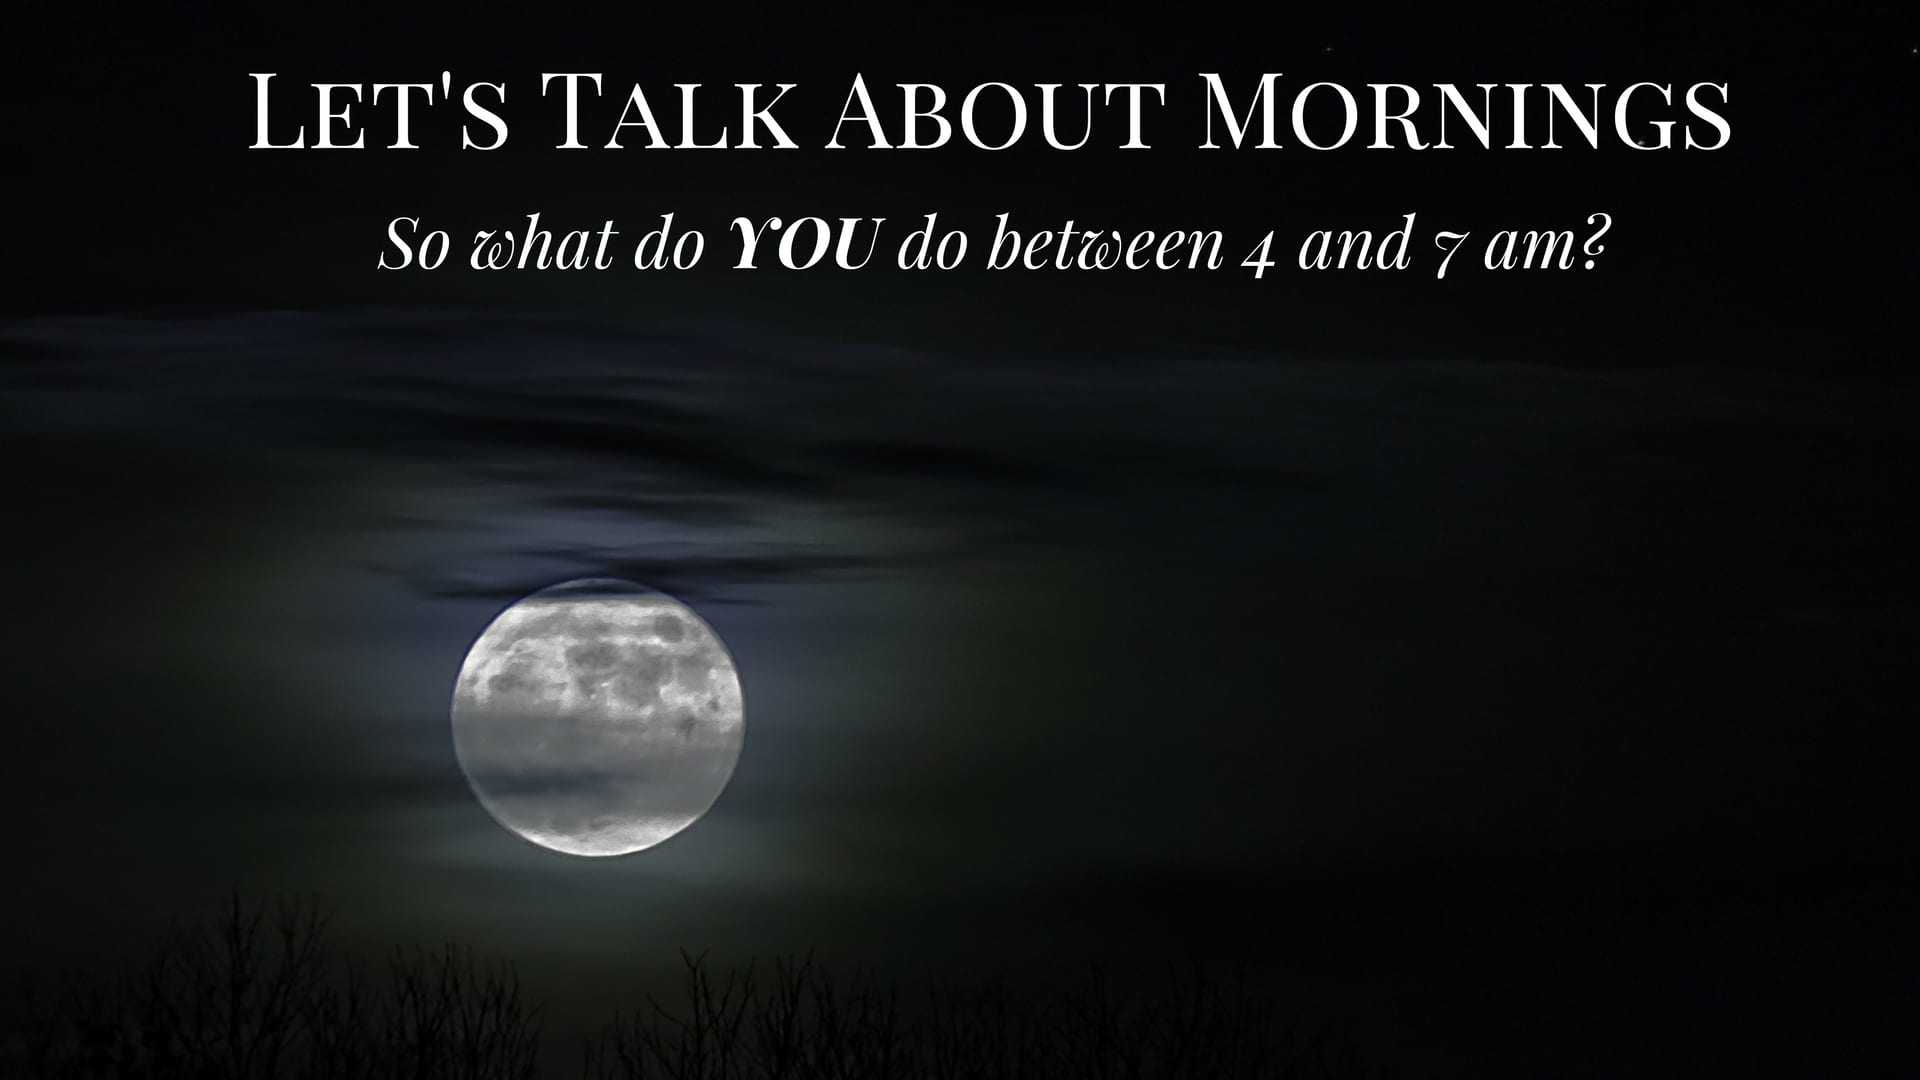 Let's Talk About Mornings